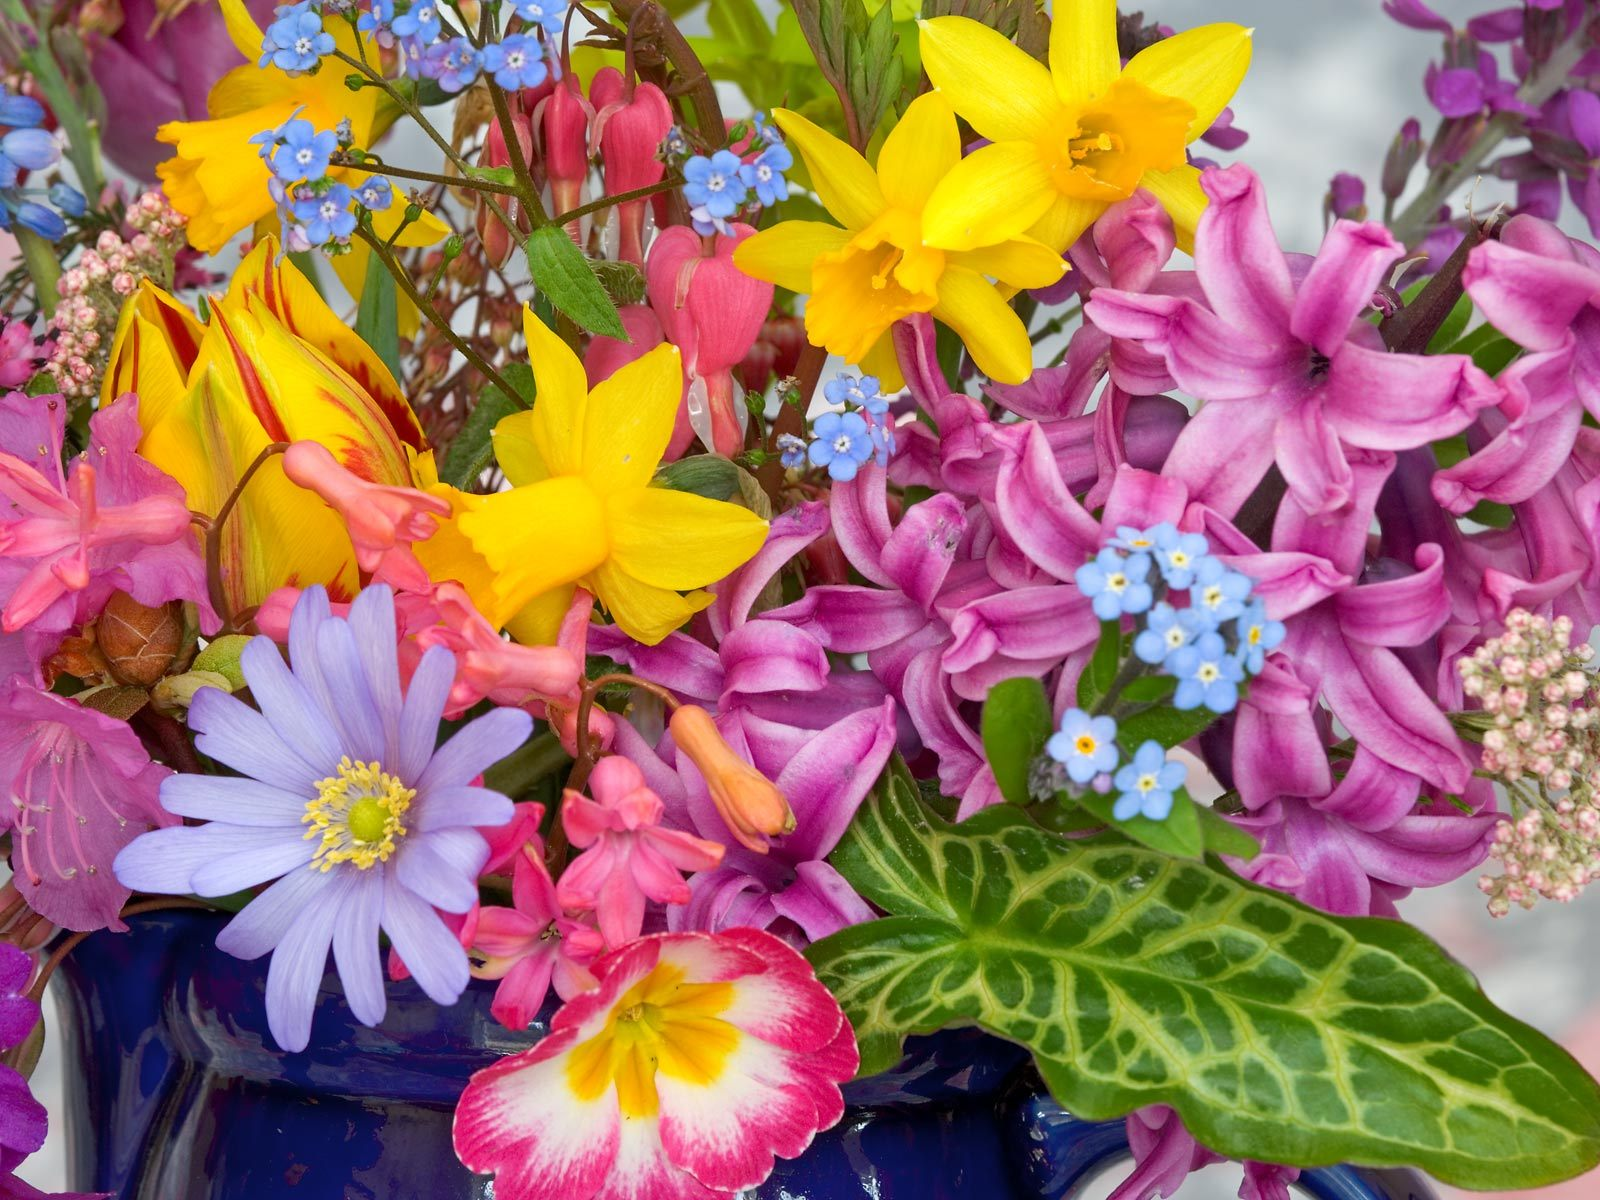 Download spring flowers 14124 1600x1200 px high resolution wallpaper spring flowers 14124 mightylinksfo Images